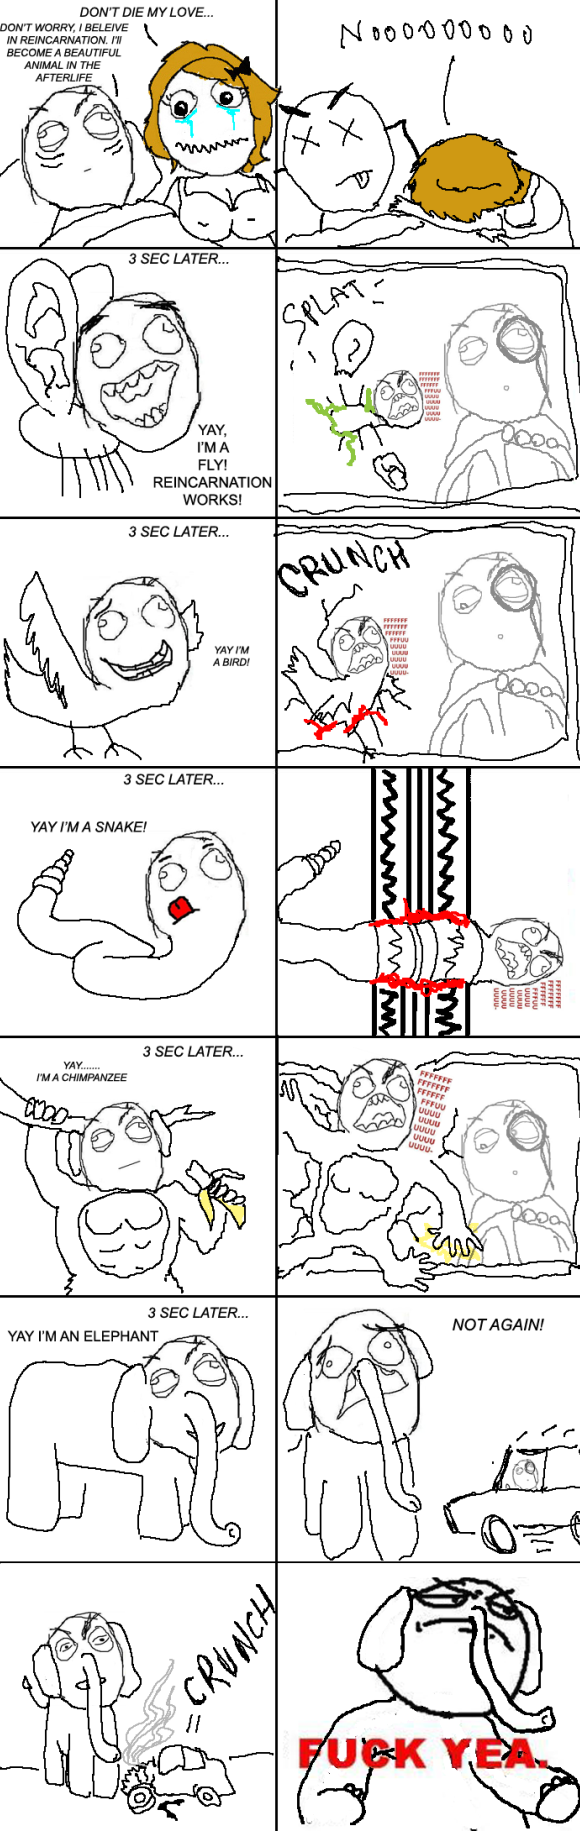 Reincarnation-FFFFUUUU - Rage comics - Fuck yea